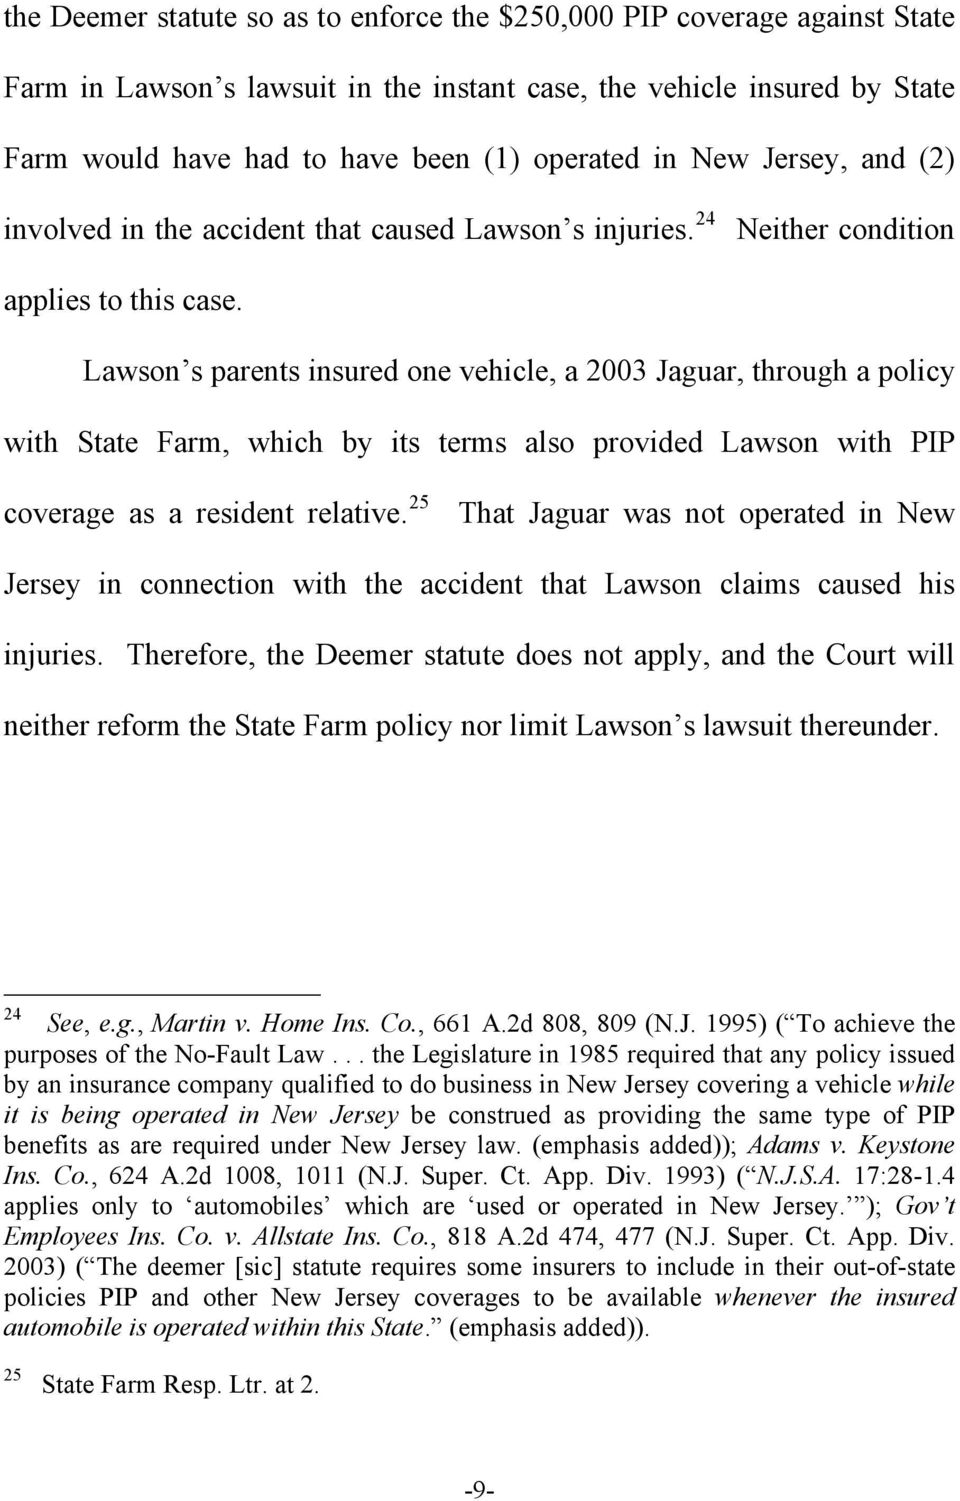 Lawson s parents insured one vehicle, a 2003 Jaguar, through a policy with State Farm, which by its terms also provided Lawson with PIP coverage as a resident relative.